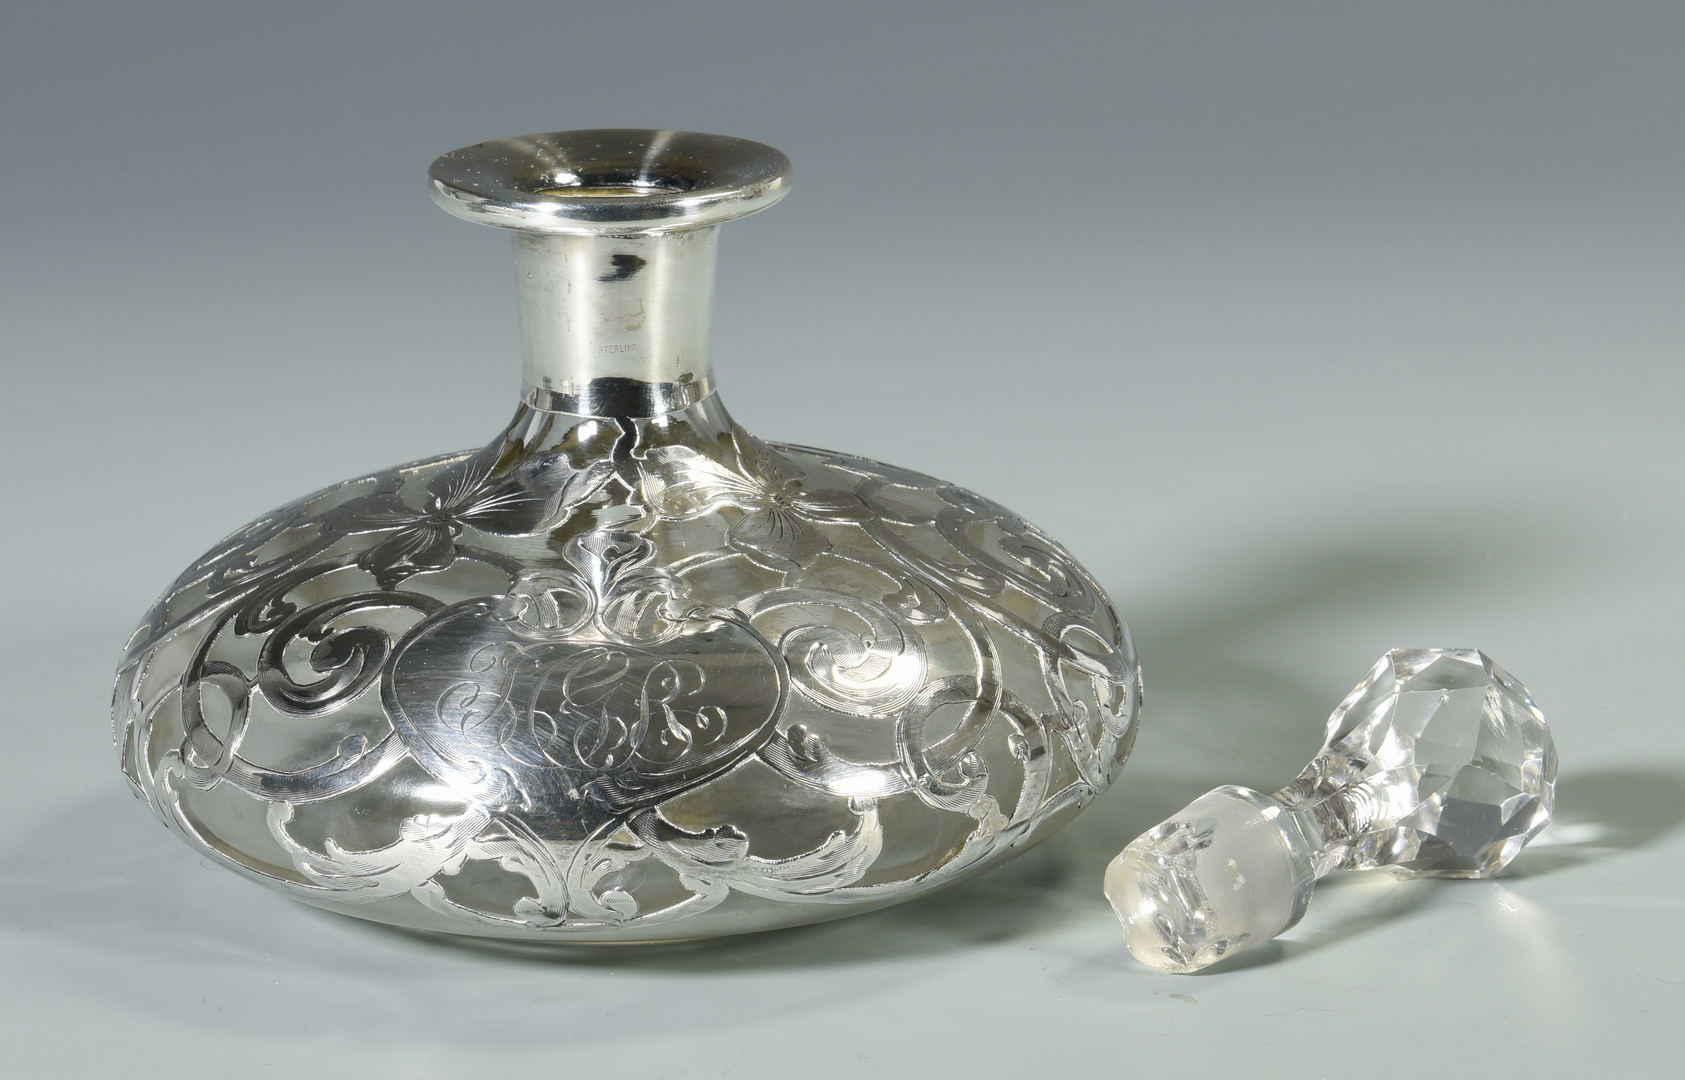 Lot 44 2 Silver Overlay Glass Items 1 Other